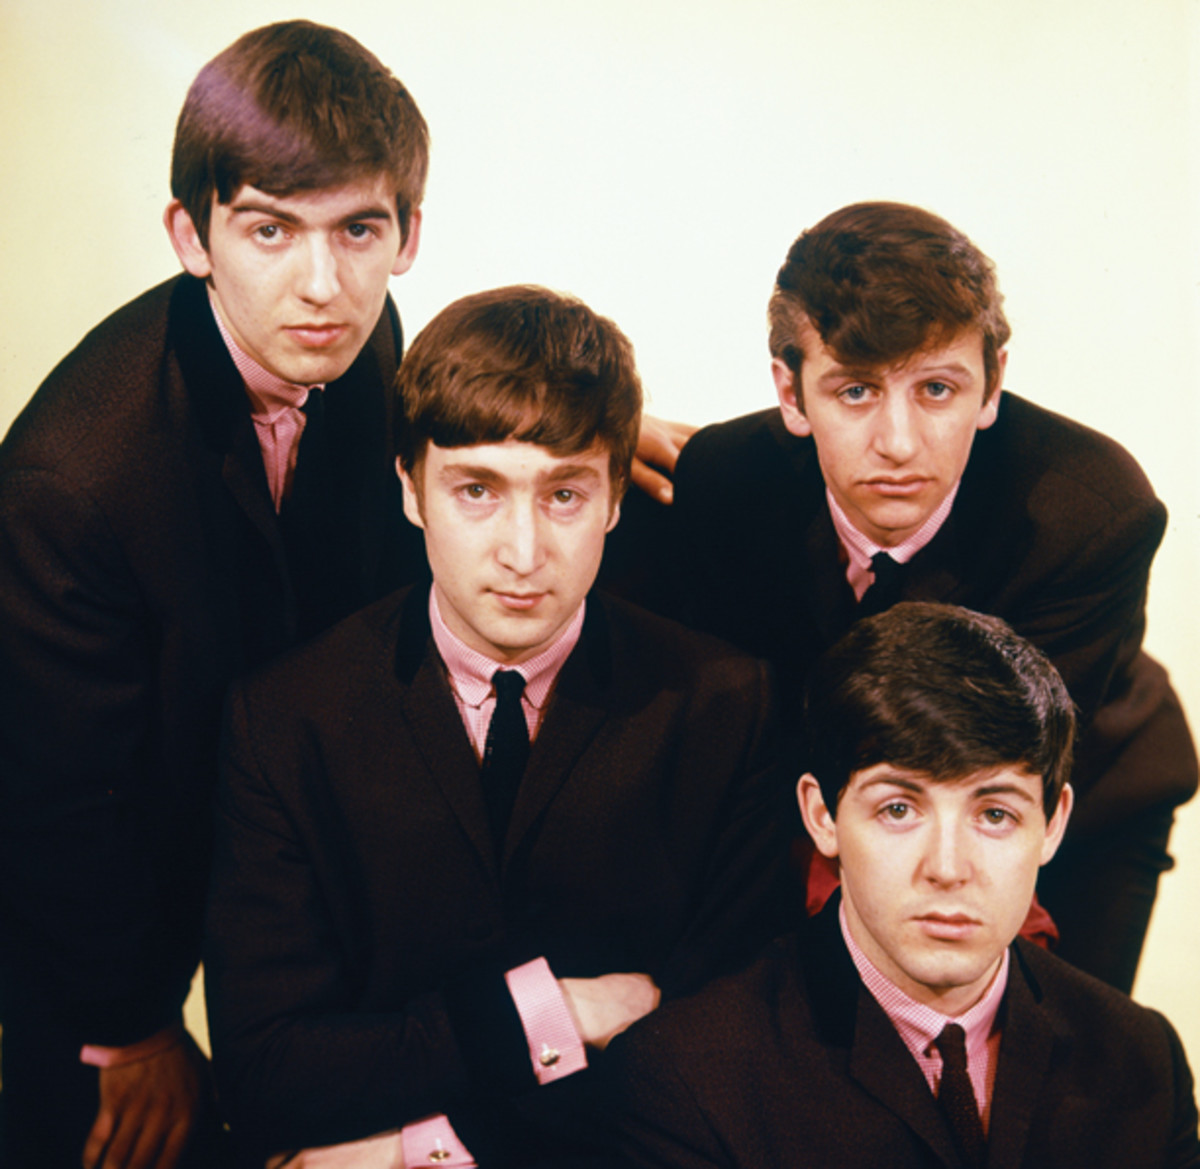 """When The Beatles arrived in America's living rooms, the suits and ties they favored gave them an air of adult authority with their young fans, but contrasted to their cheeky personalities. """"The relationship that fans had with the Beatles during those years is still without historical precedence; there's nothing like it. And can't be anything like it again,"""" says Candy Leonard, author of """"Beatleness."""" The band — which admittedly never strays far from the spotlight despite being disbanded for nearly 45 years — and its music has continued to resonate with new generations of music lovers. Capitol Records released the band's U.S. albums on vinyl, in mono, in 2014, in honor of the 50th anniversary of Beatlemania. PHoto courtesy Apple Corps/Calderstone Productions Ltd."""